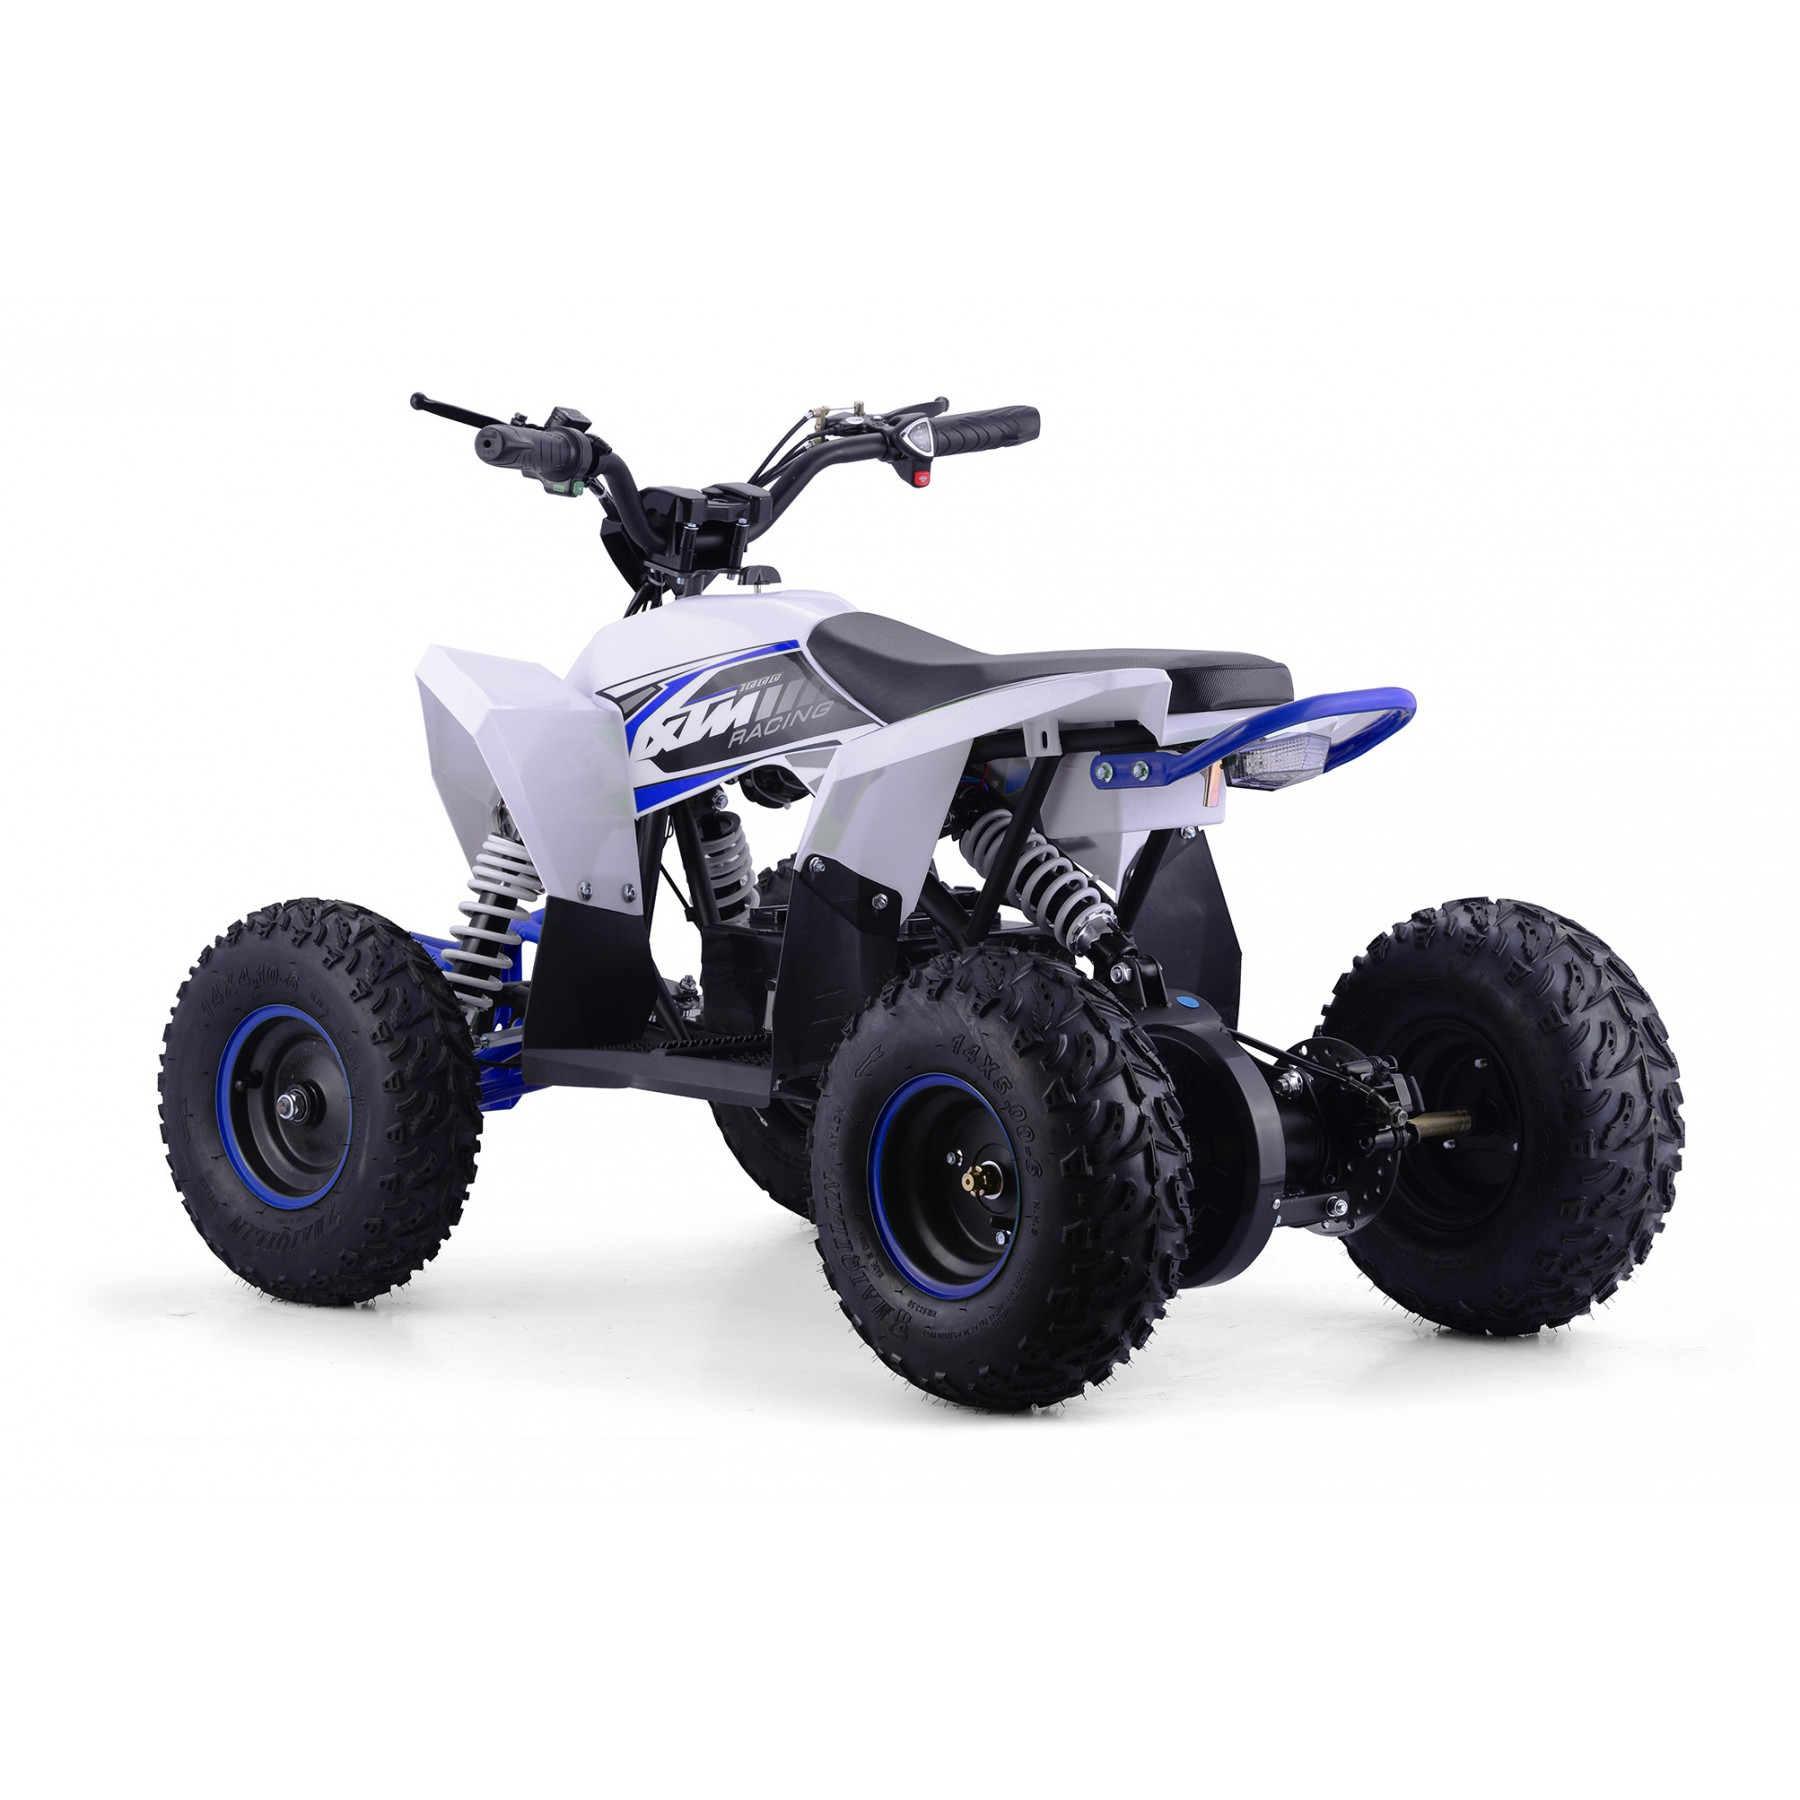 XTM RACING 48v 1300w LITHIUM QUAD BIKE WHITE BLUE